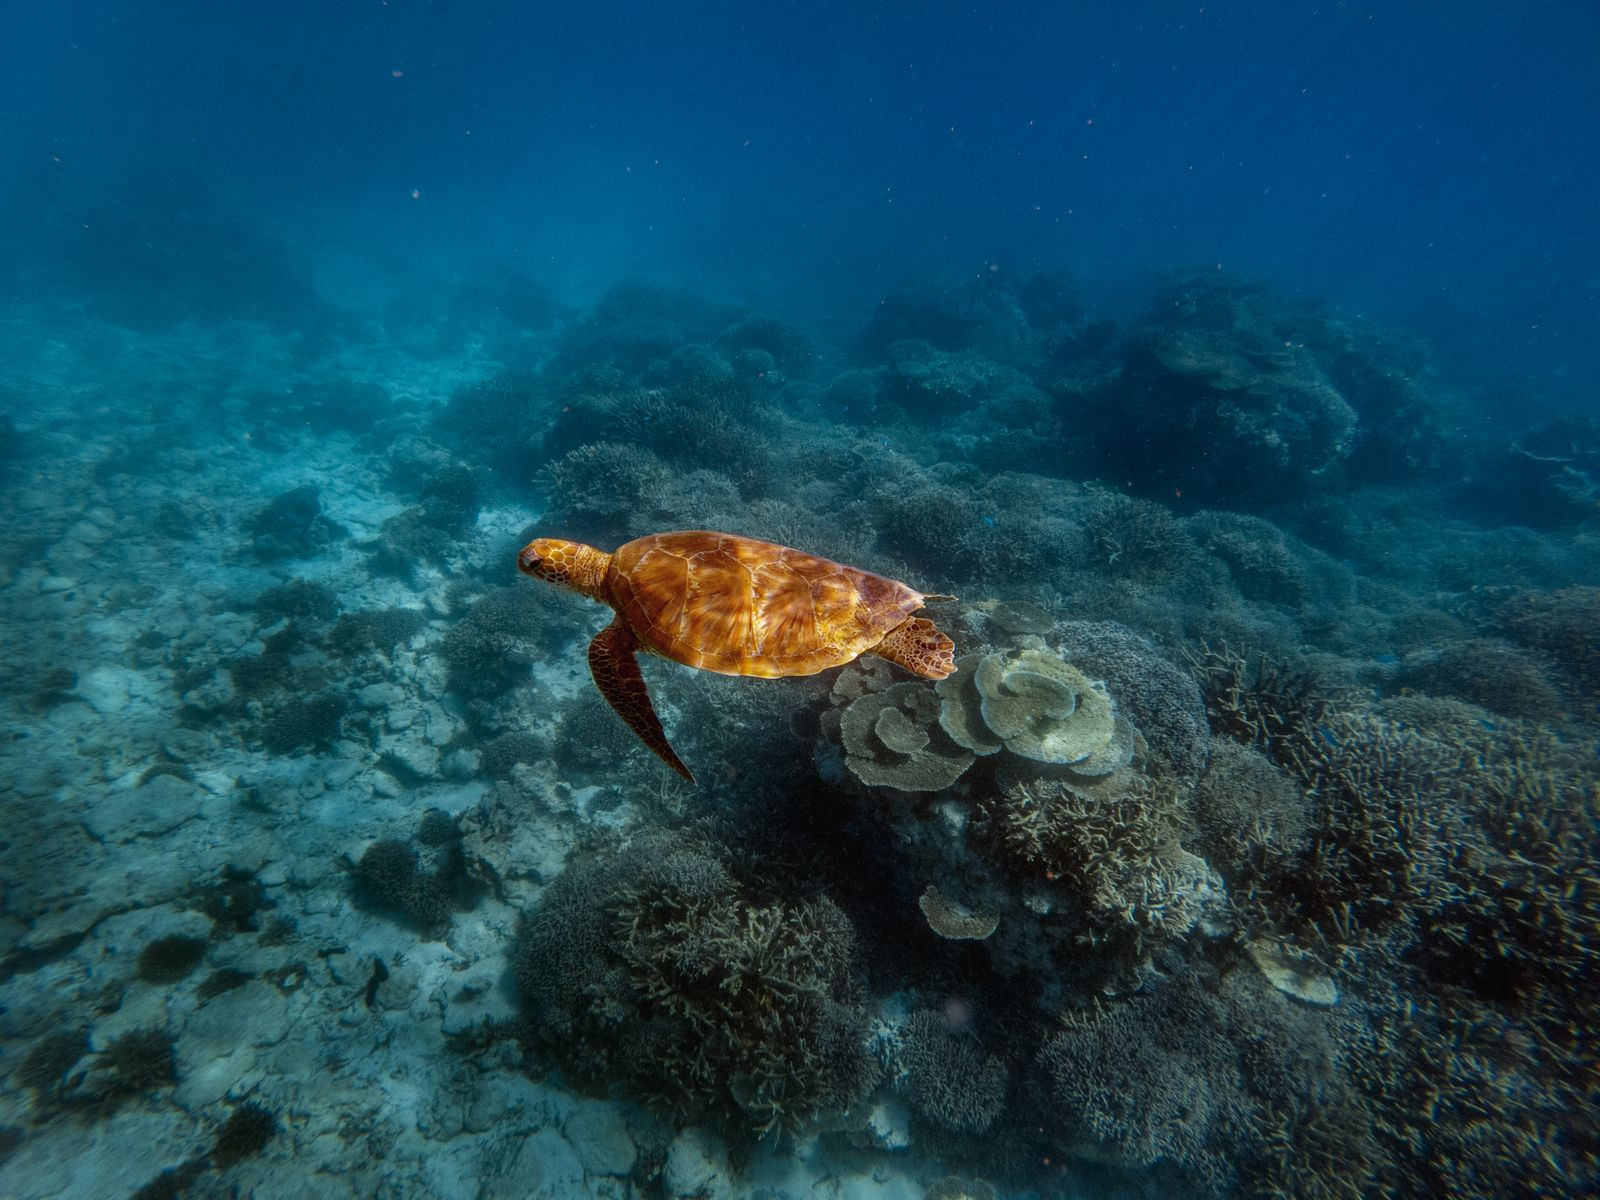 A green sea turtle is flourishing among the corals at lady